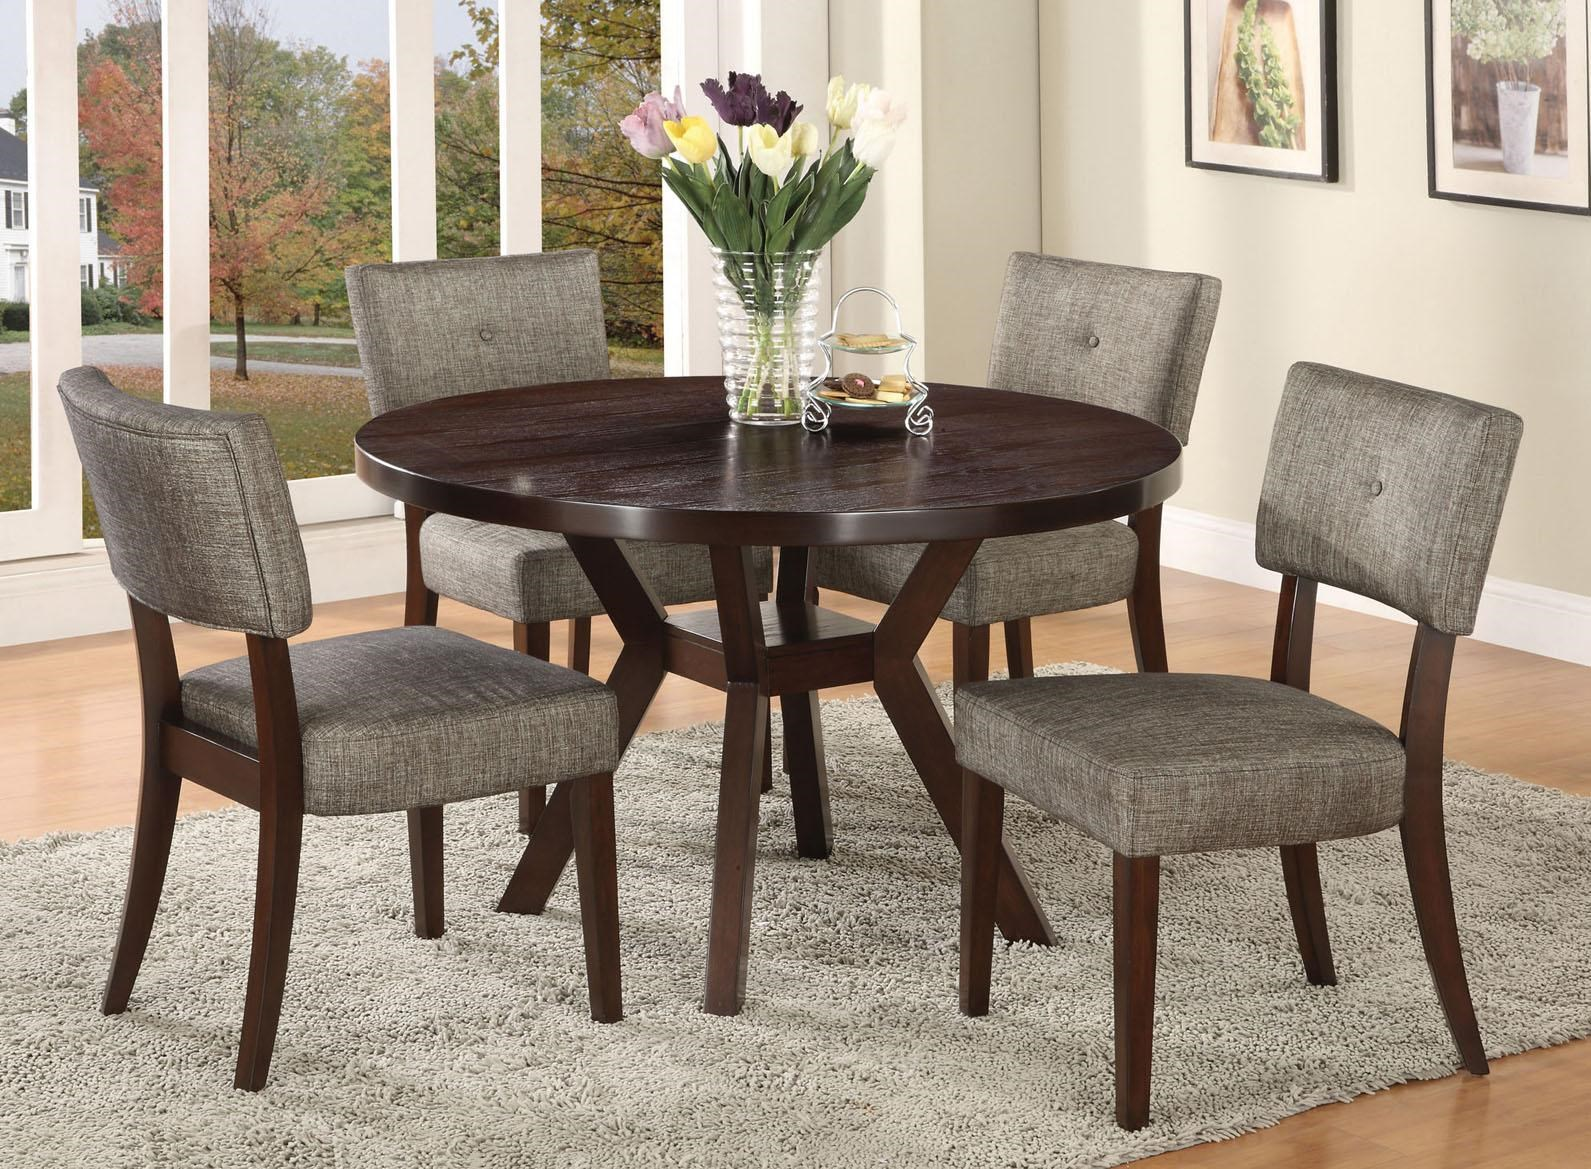 Modern Dining Set Drake Espresso 5 Piece Modern Dining Set By Acme Furniture At Rooms For Less